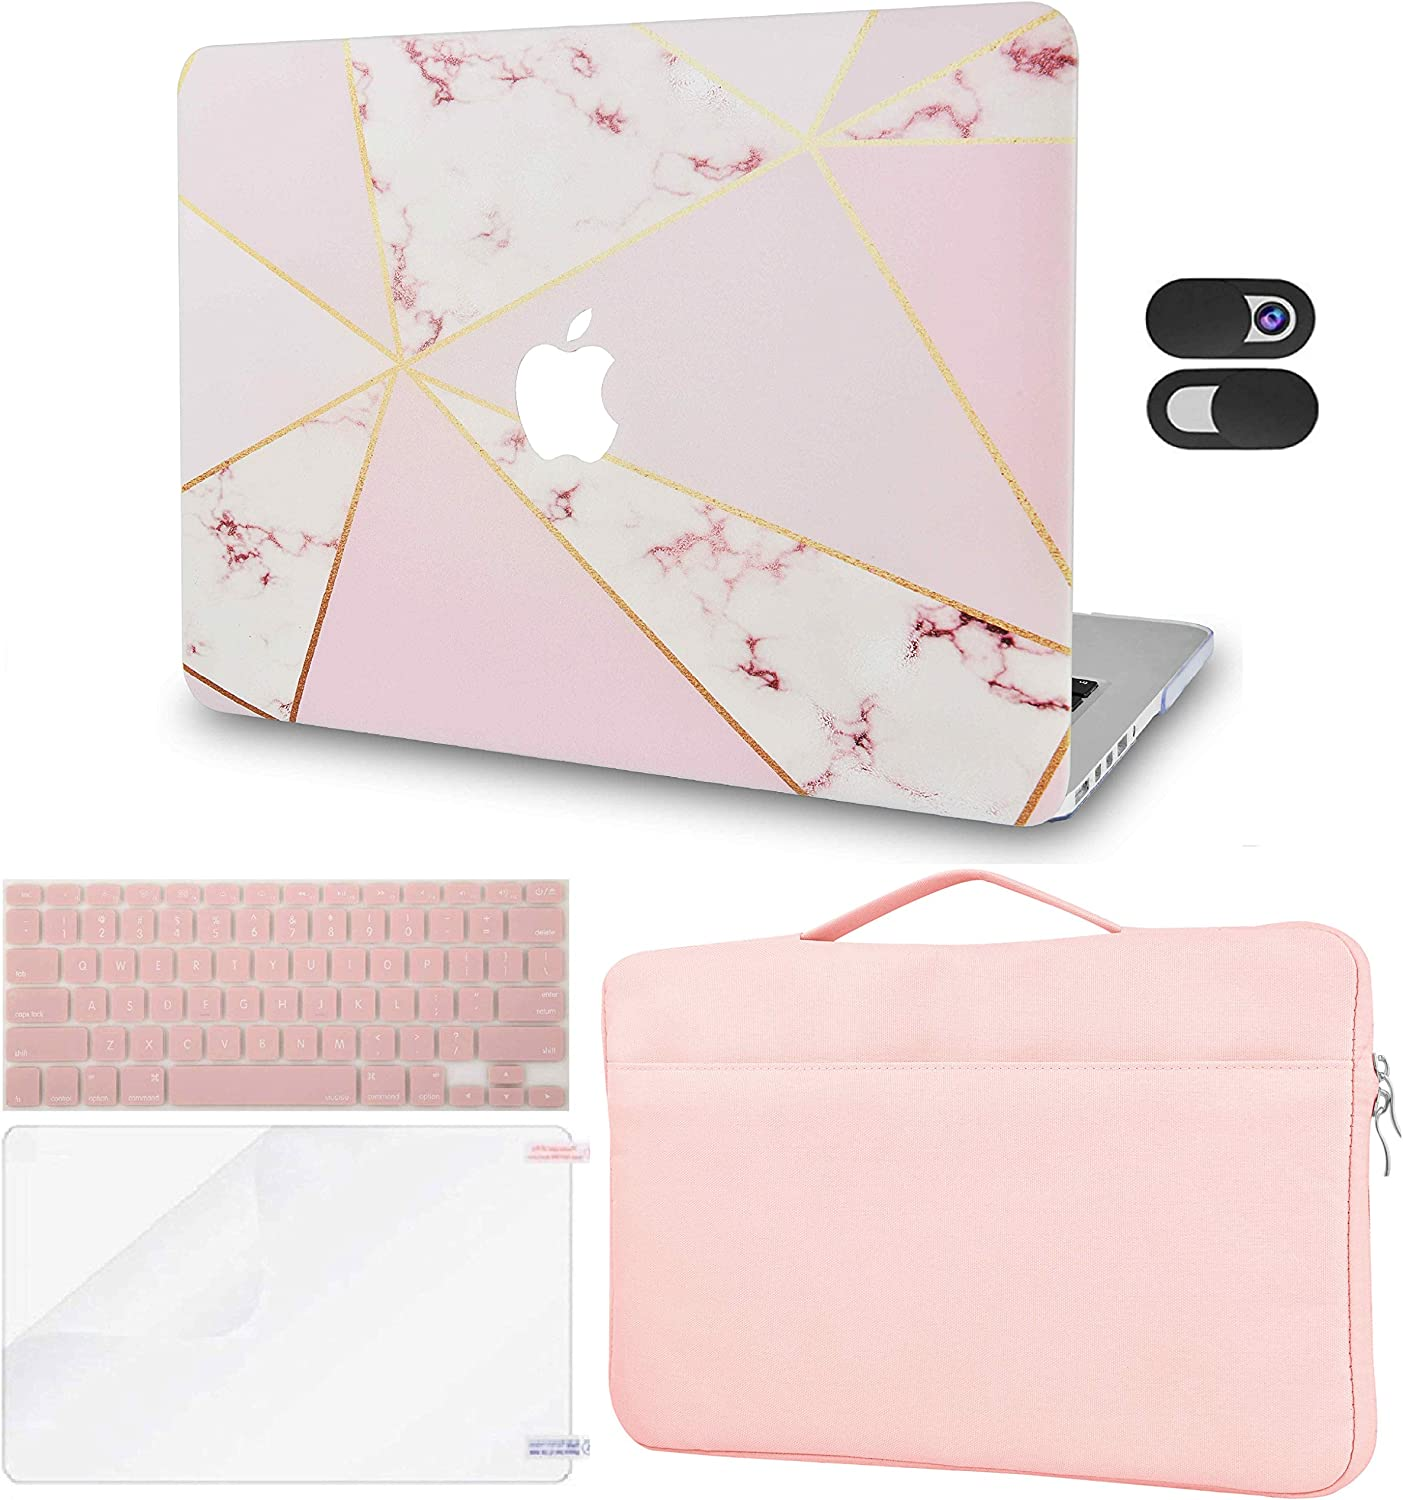 LuvCase 5in1 Laptop Case Compatible with MacBook Air 13